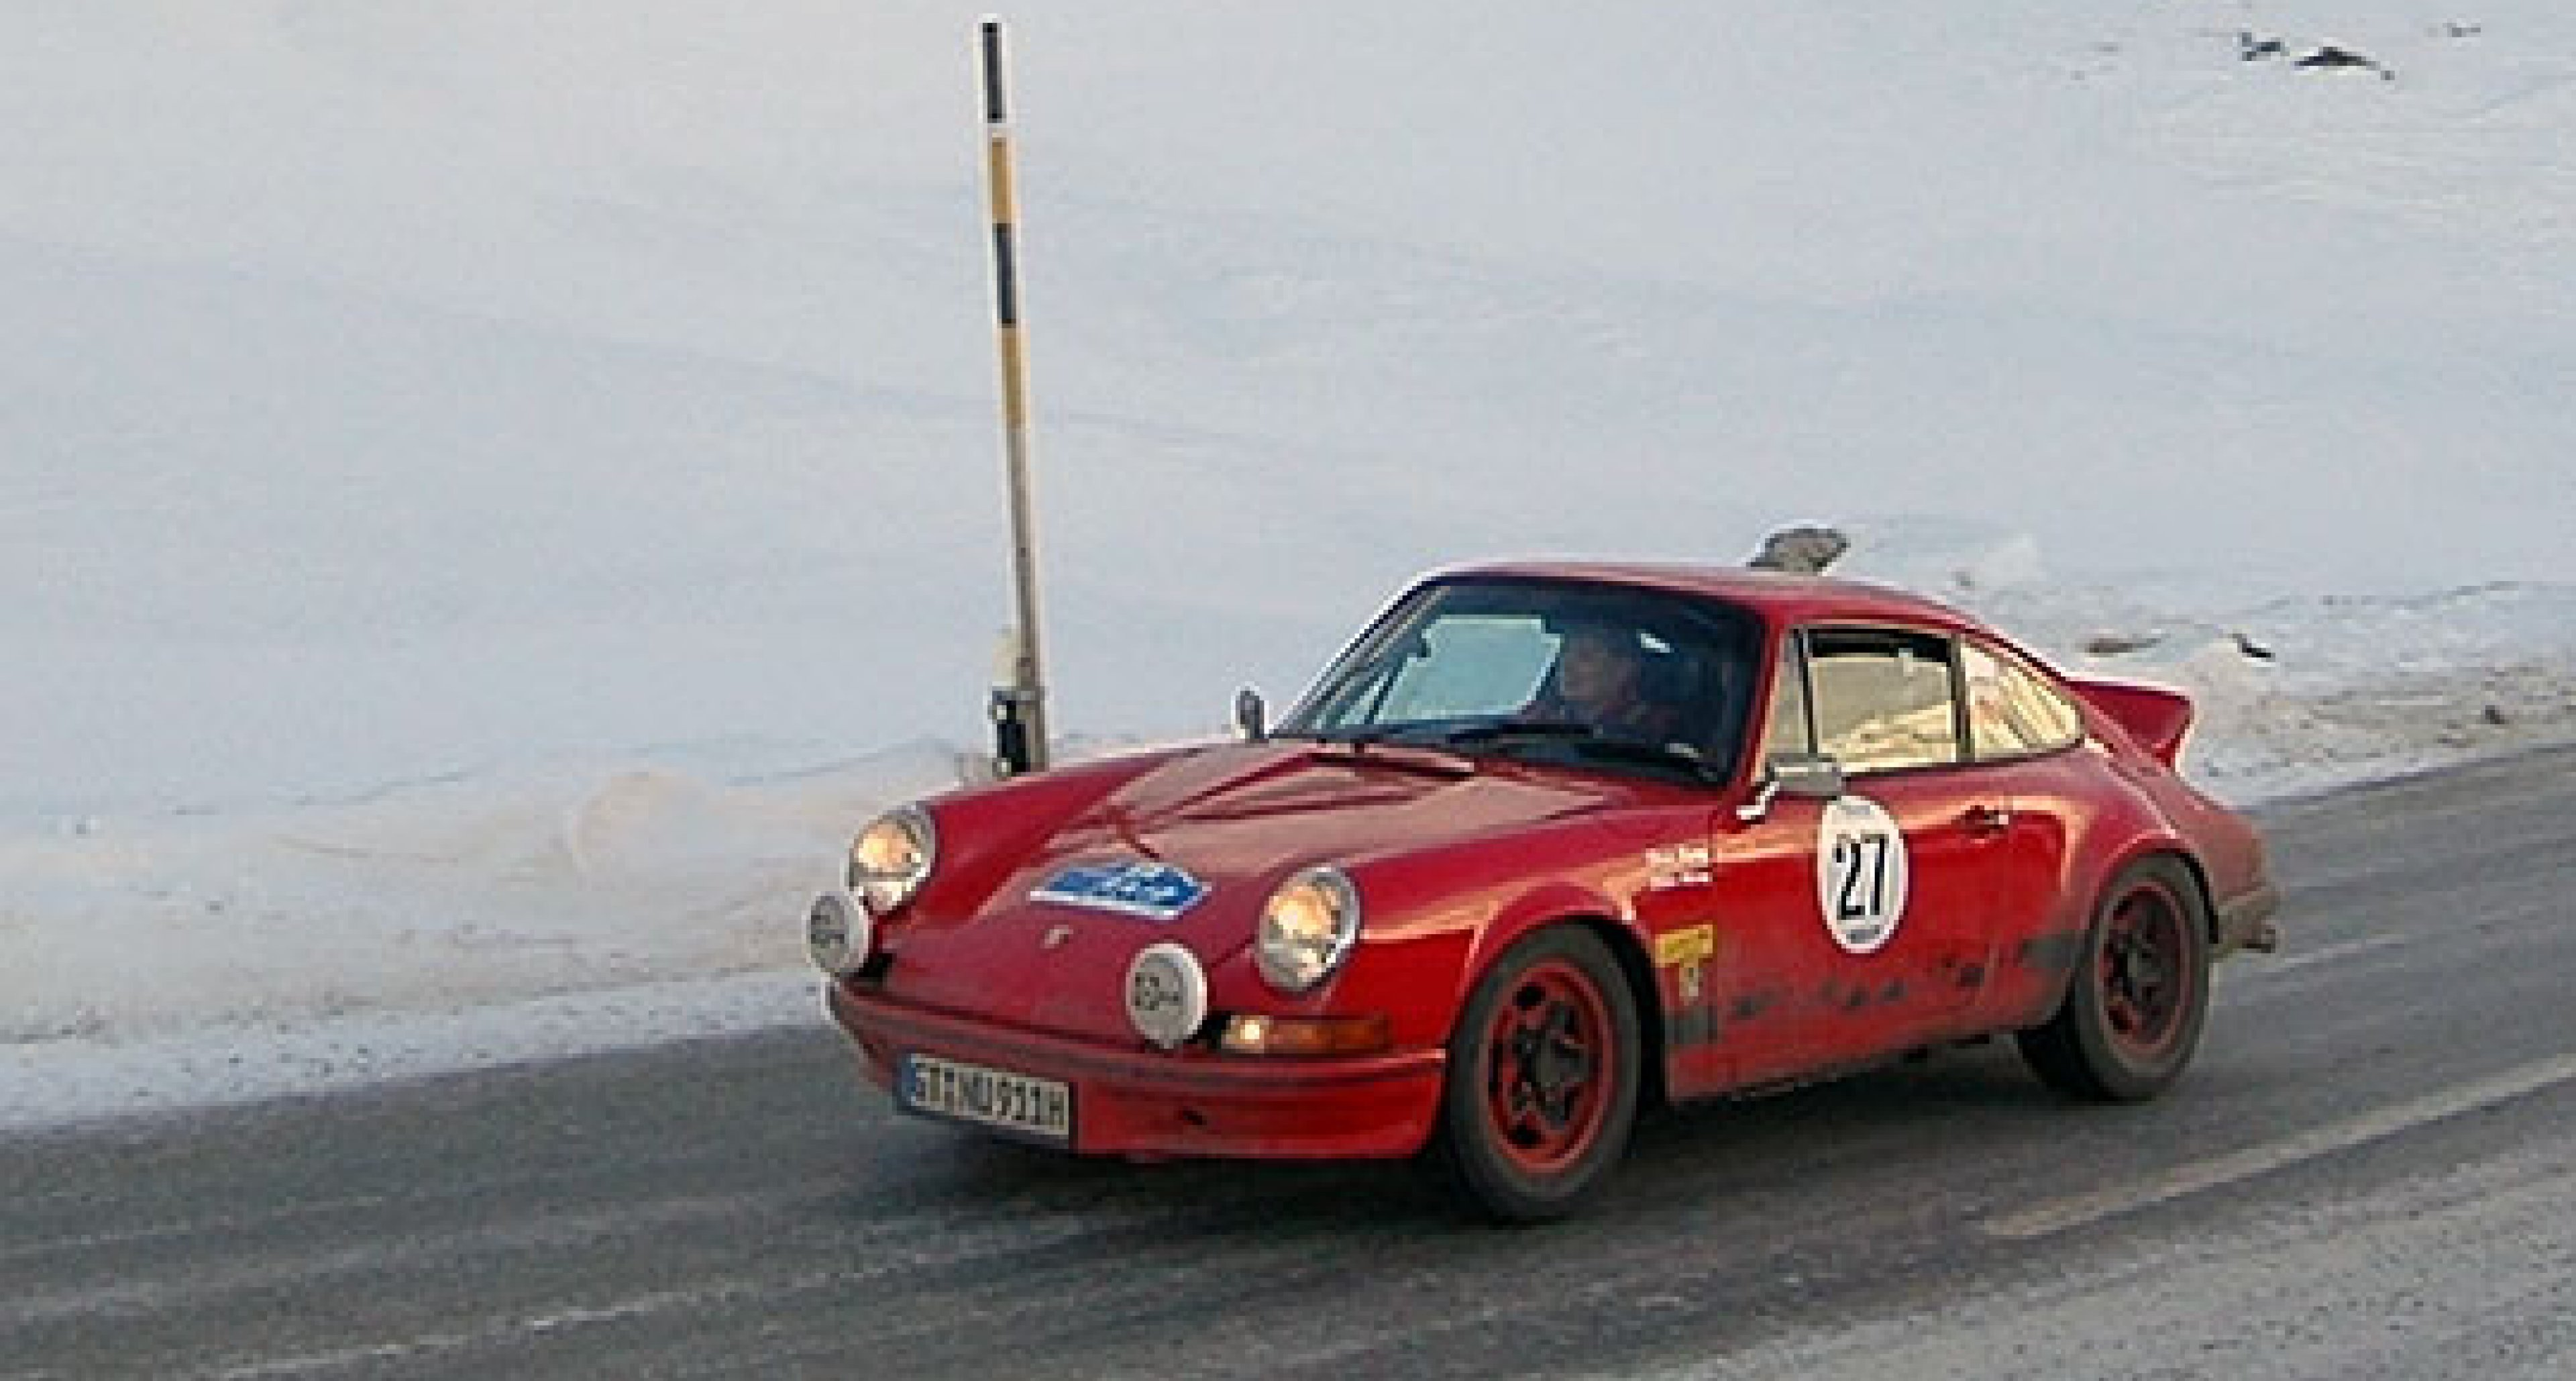 Classic rallying in the snow - the 2007 WinterRAID